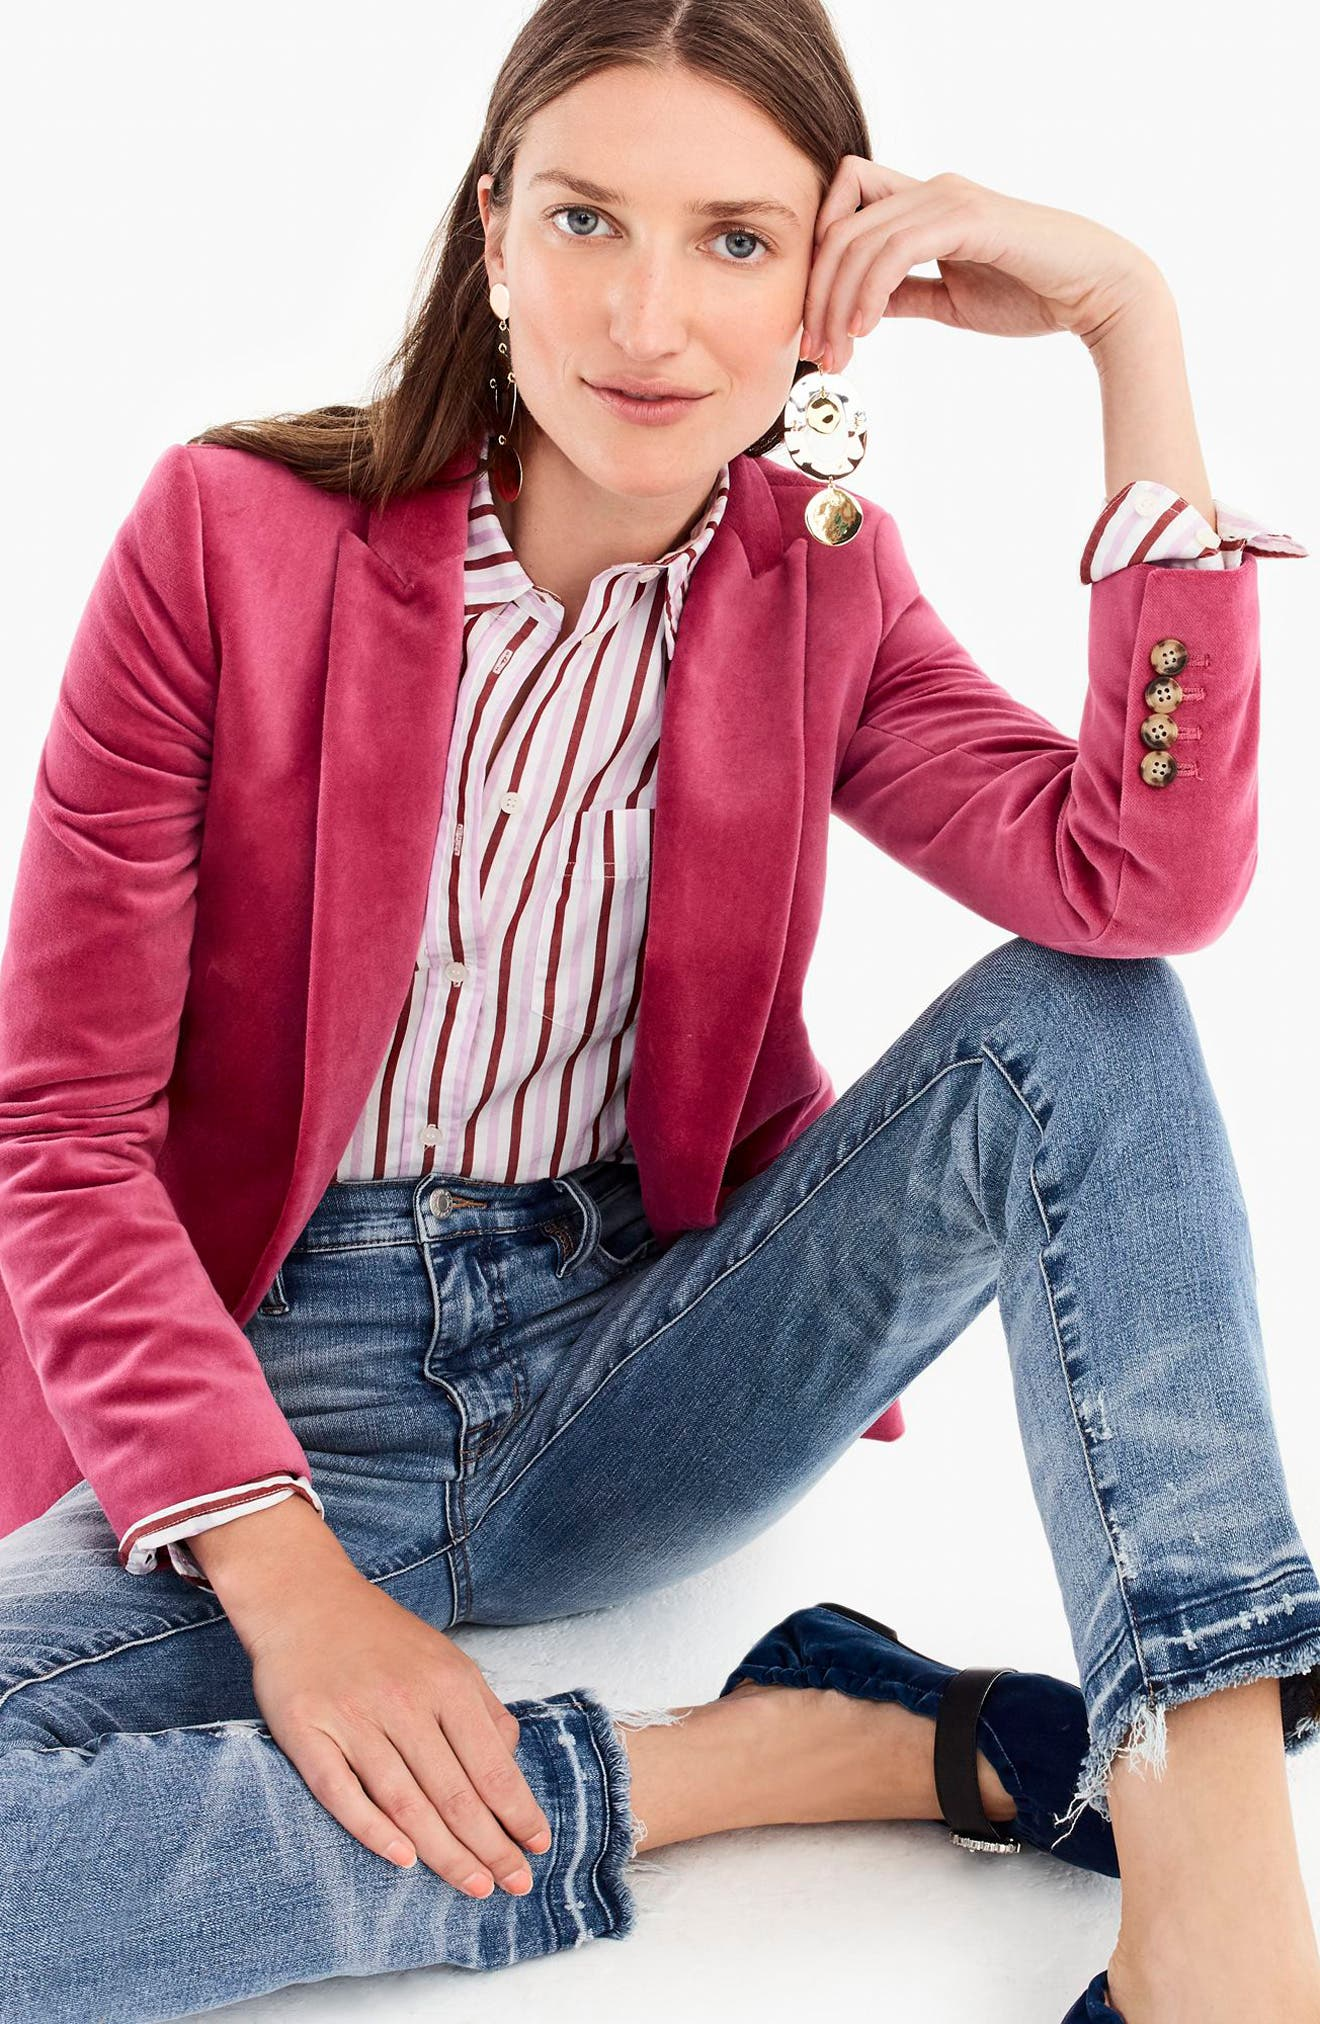 Parke Velvet Blazer,                             Alternate thumbnail 14, color,                             DRIED ROSE